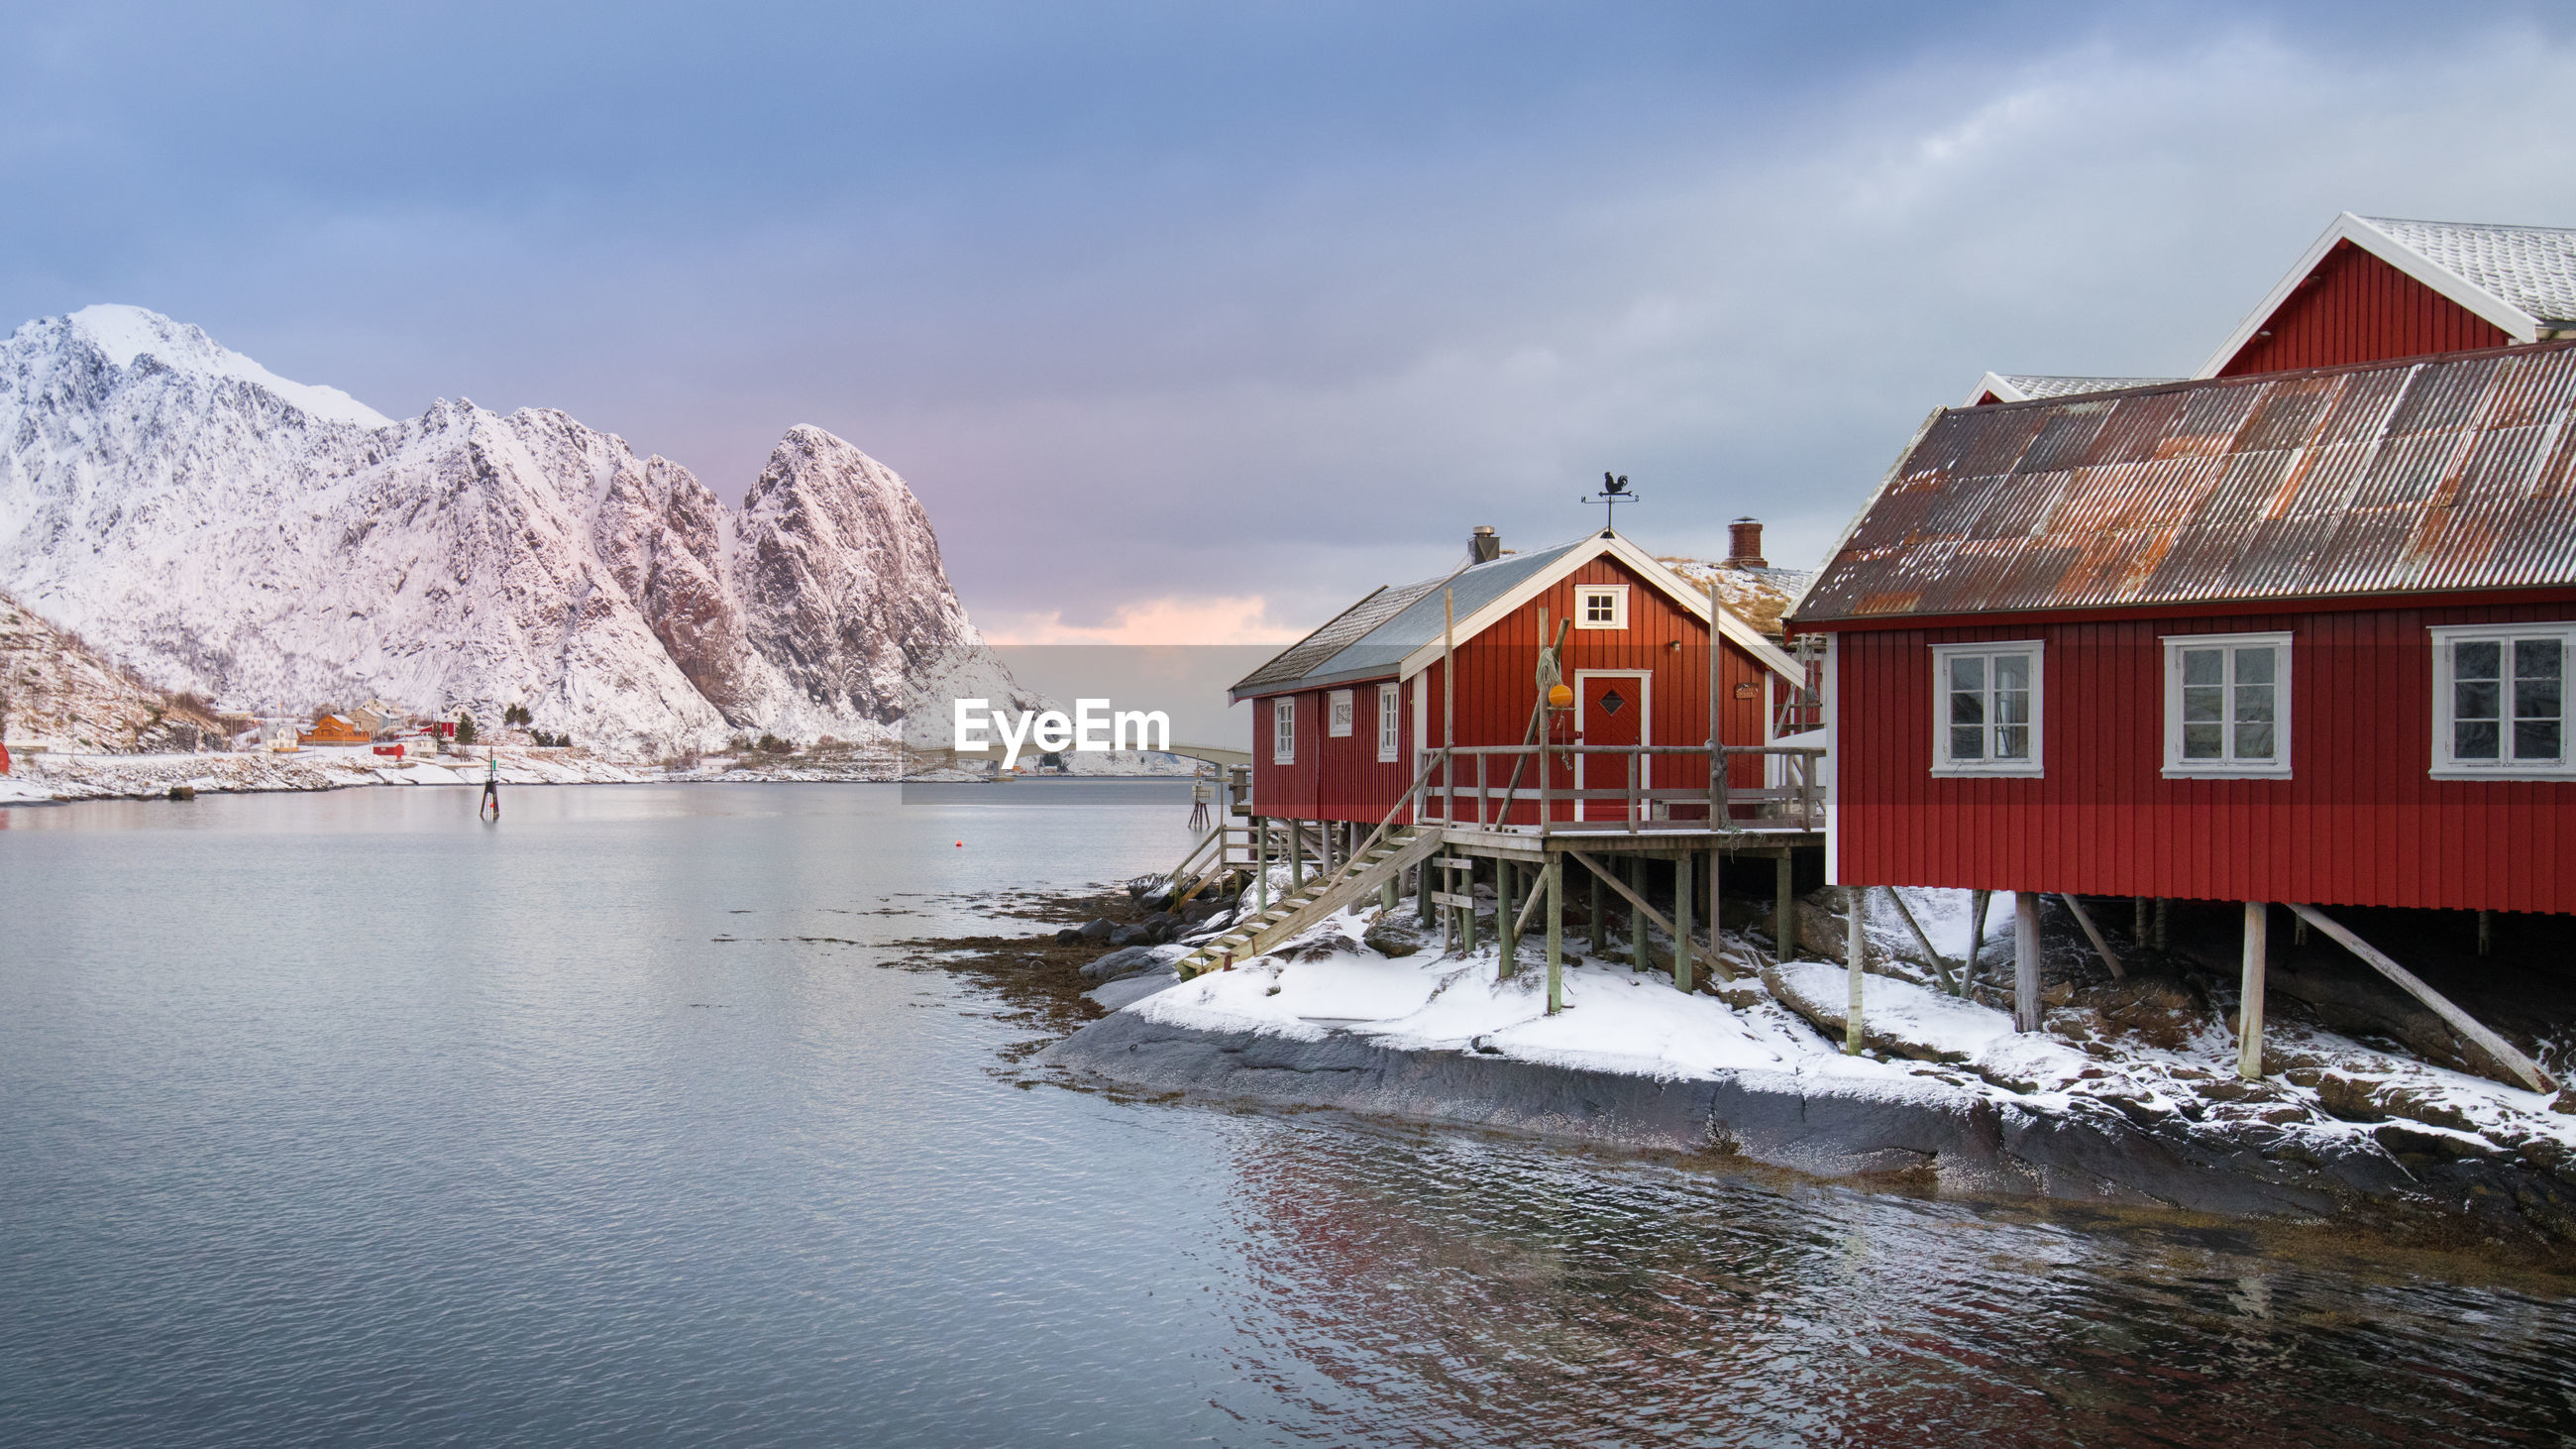 HOUSE BY BUILDING DURING WINTER